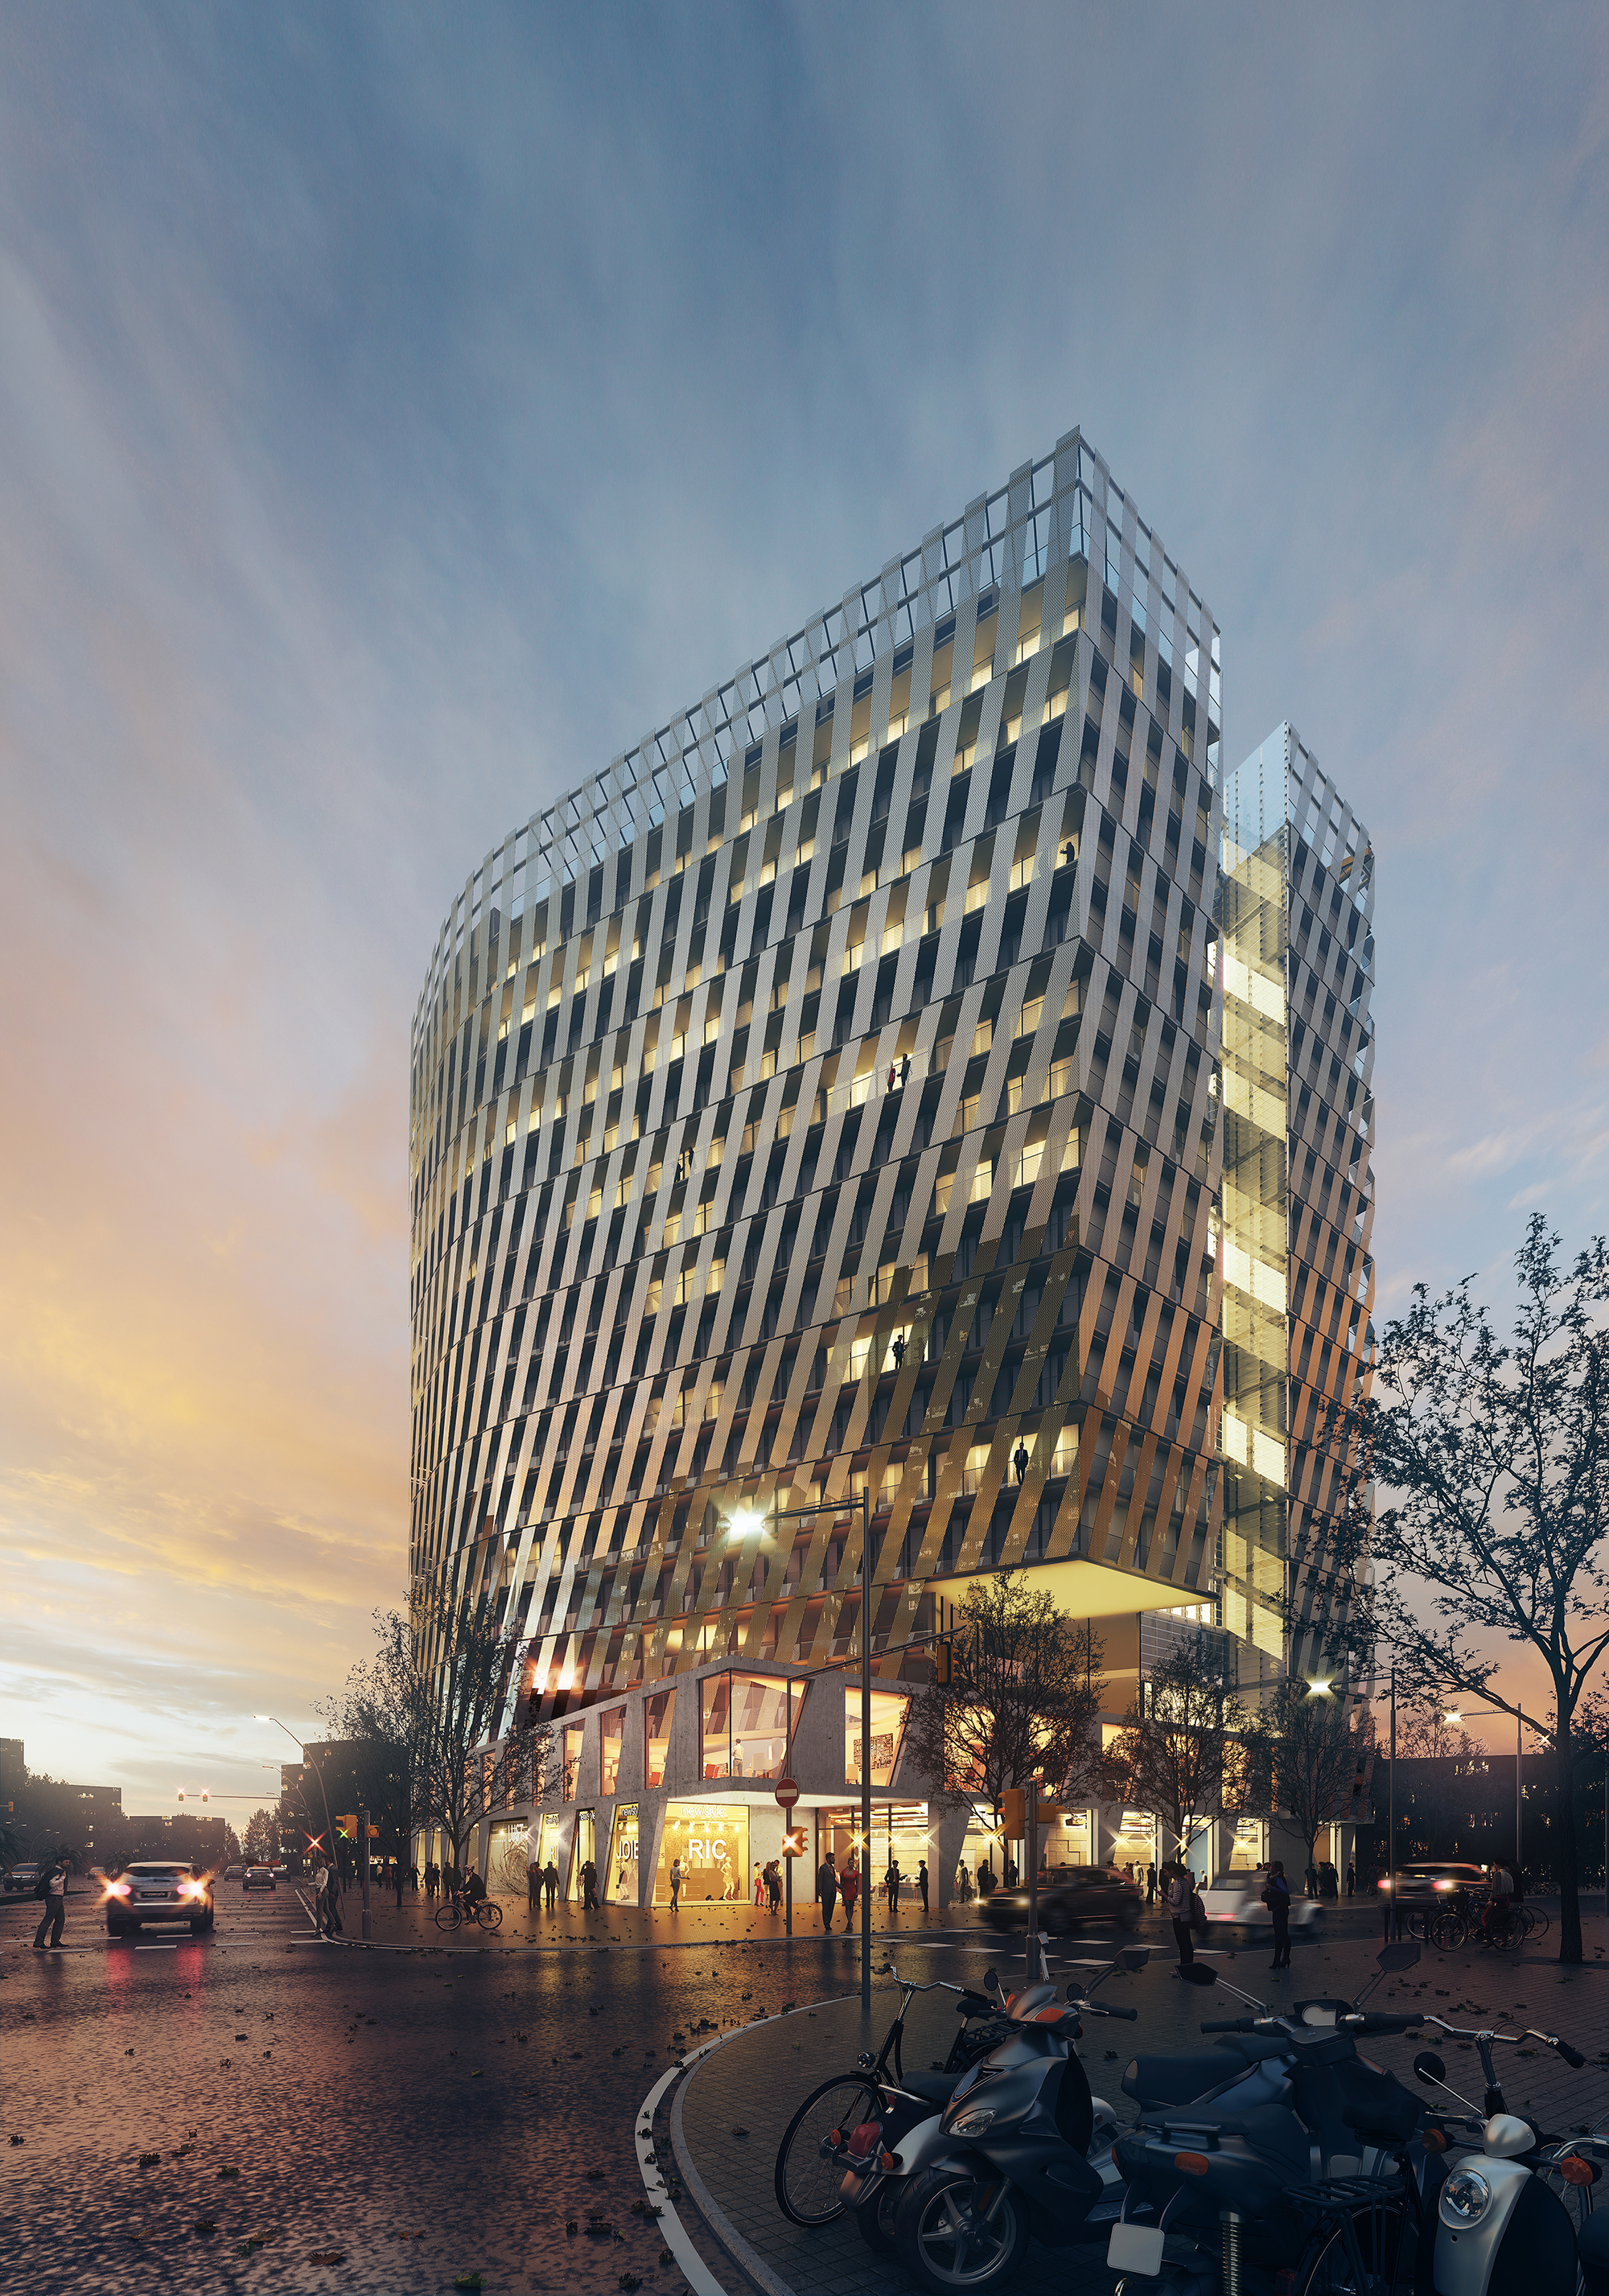 Tembo Suites and Apartments in Barcelona / HYBRIDa architecture / aZCON Architecture / D388 Arquitectes